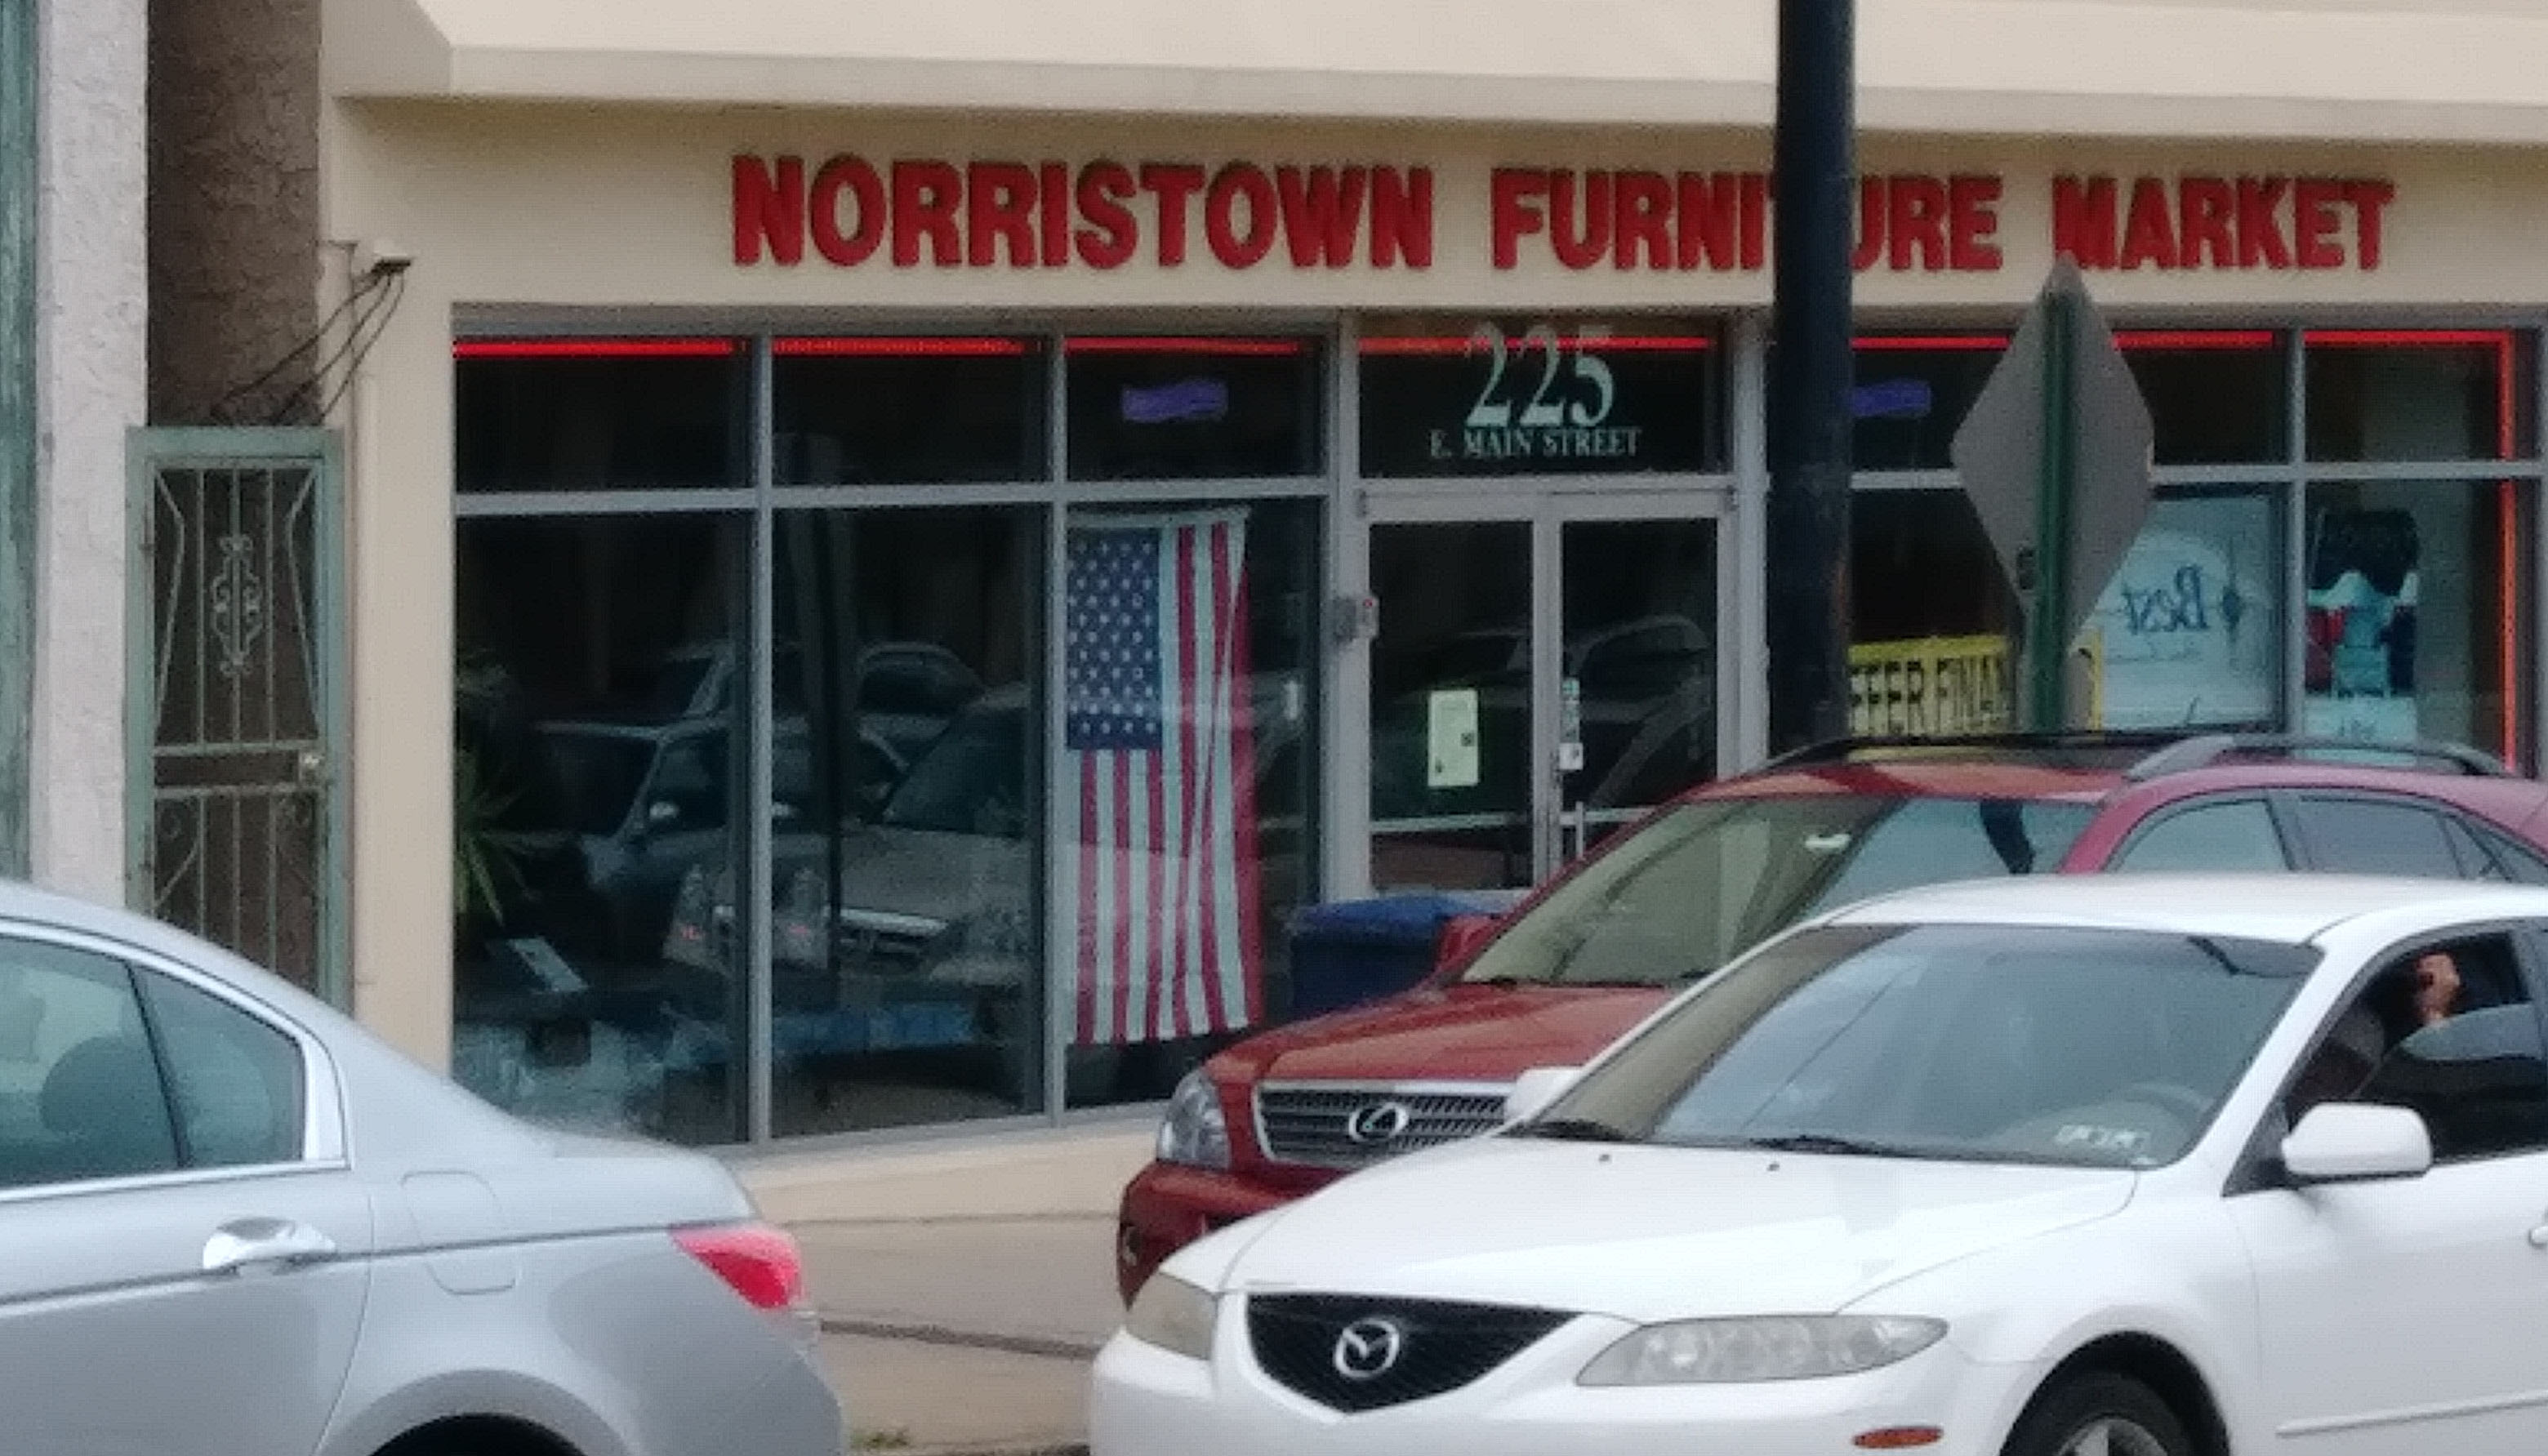 Furniture store in Norristown, Pa. (Stacy Brown/NNPA)